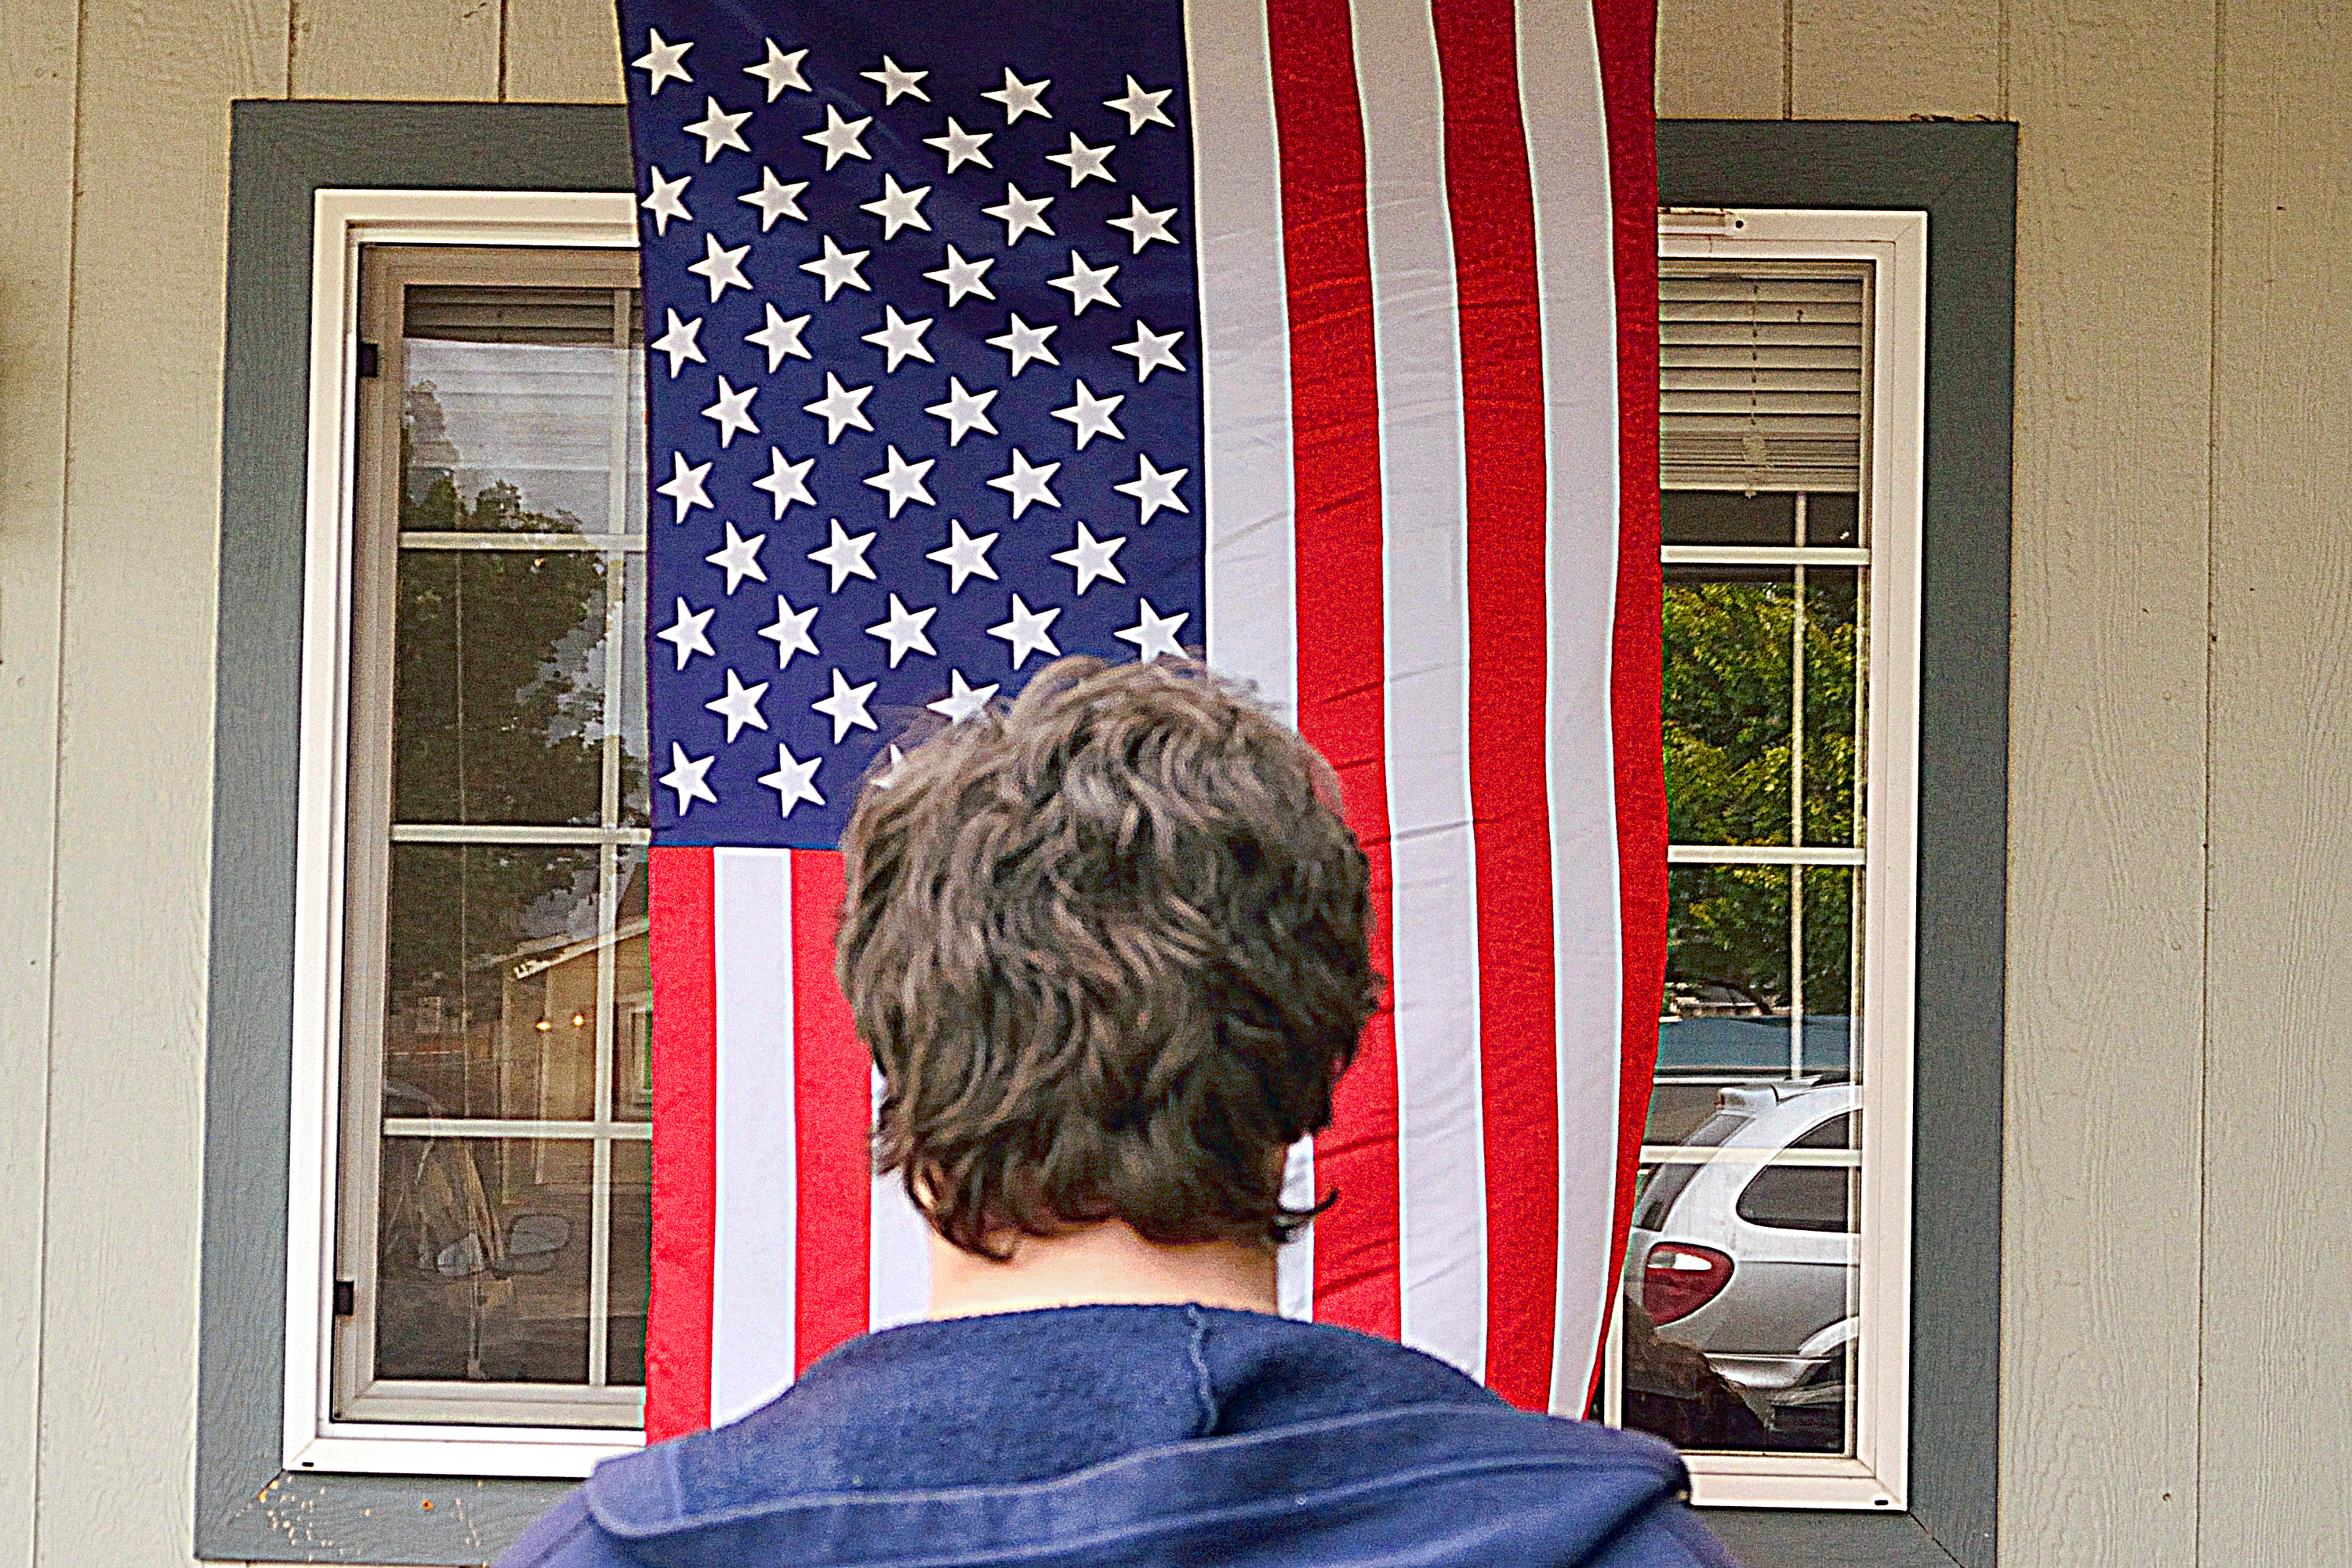 Hang Flag On Wall how to hang an american flag vertically | our everyday life